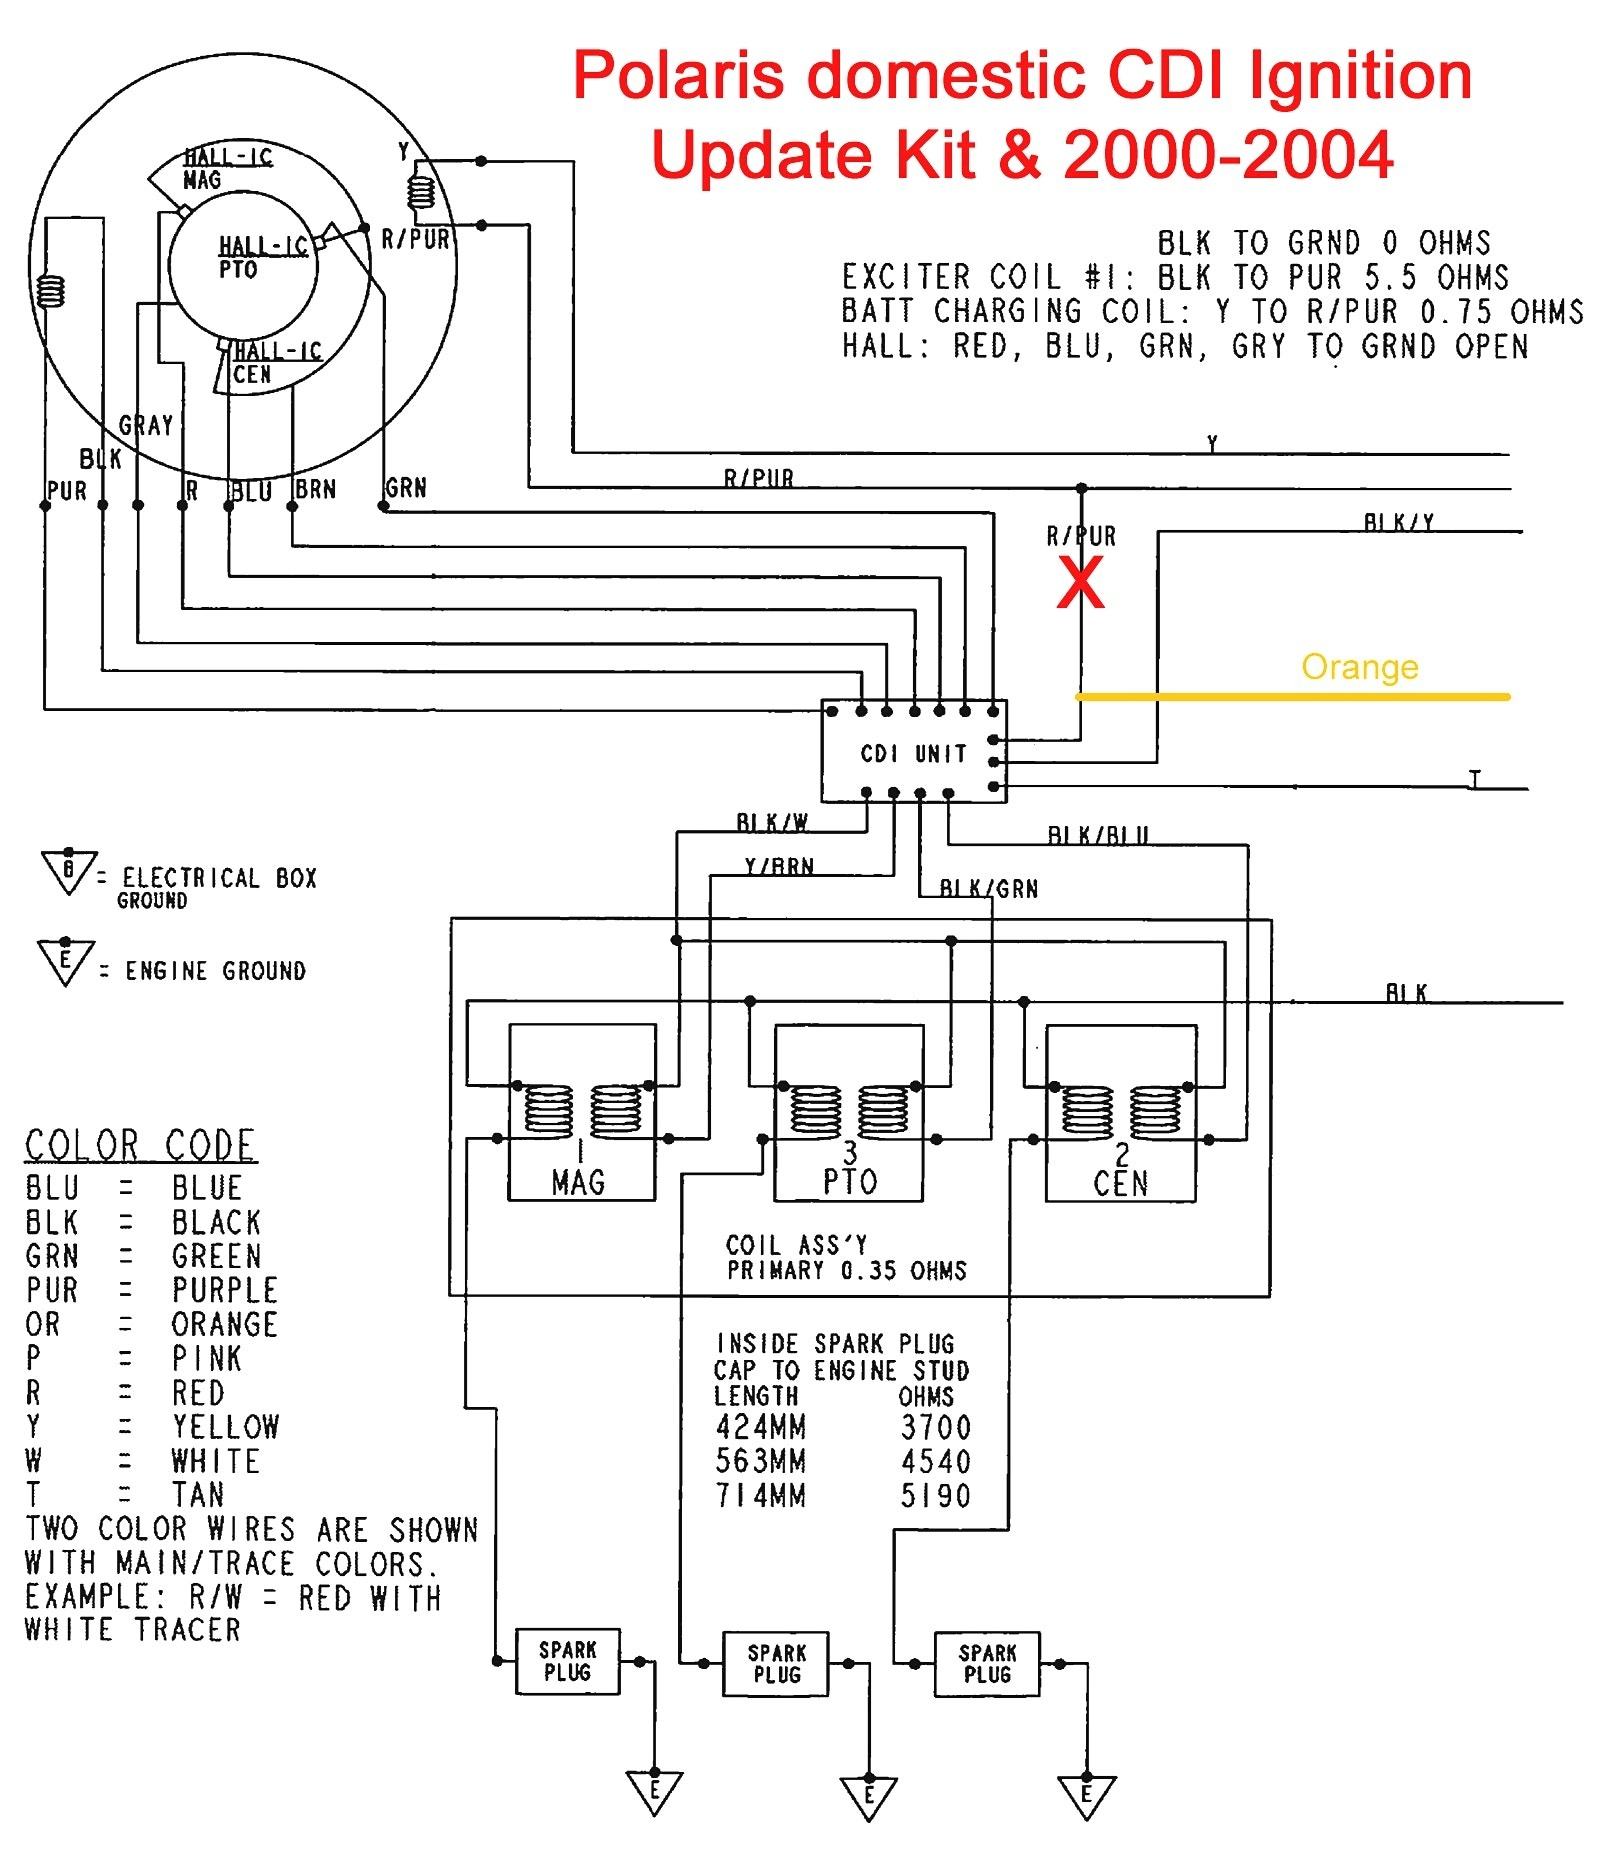 boss v plow wiring diagram Download-Western Plow Wiring Diagram Best Boss Plow Wiring Diagram New 12-t